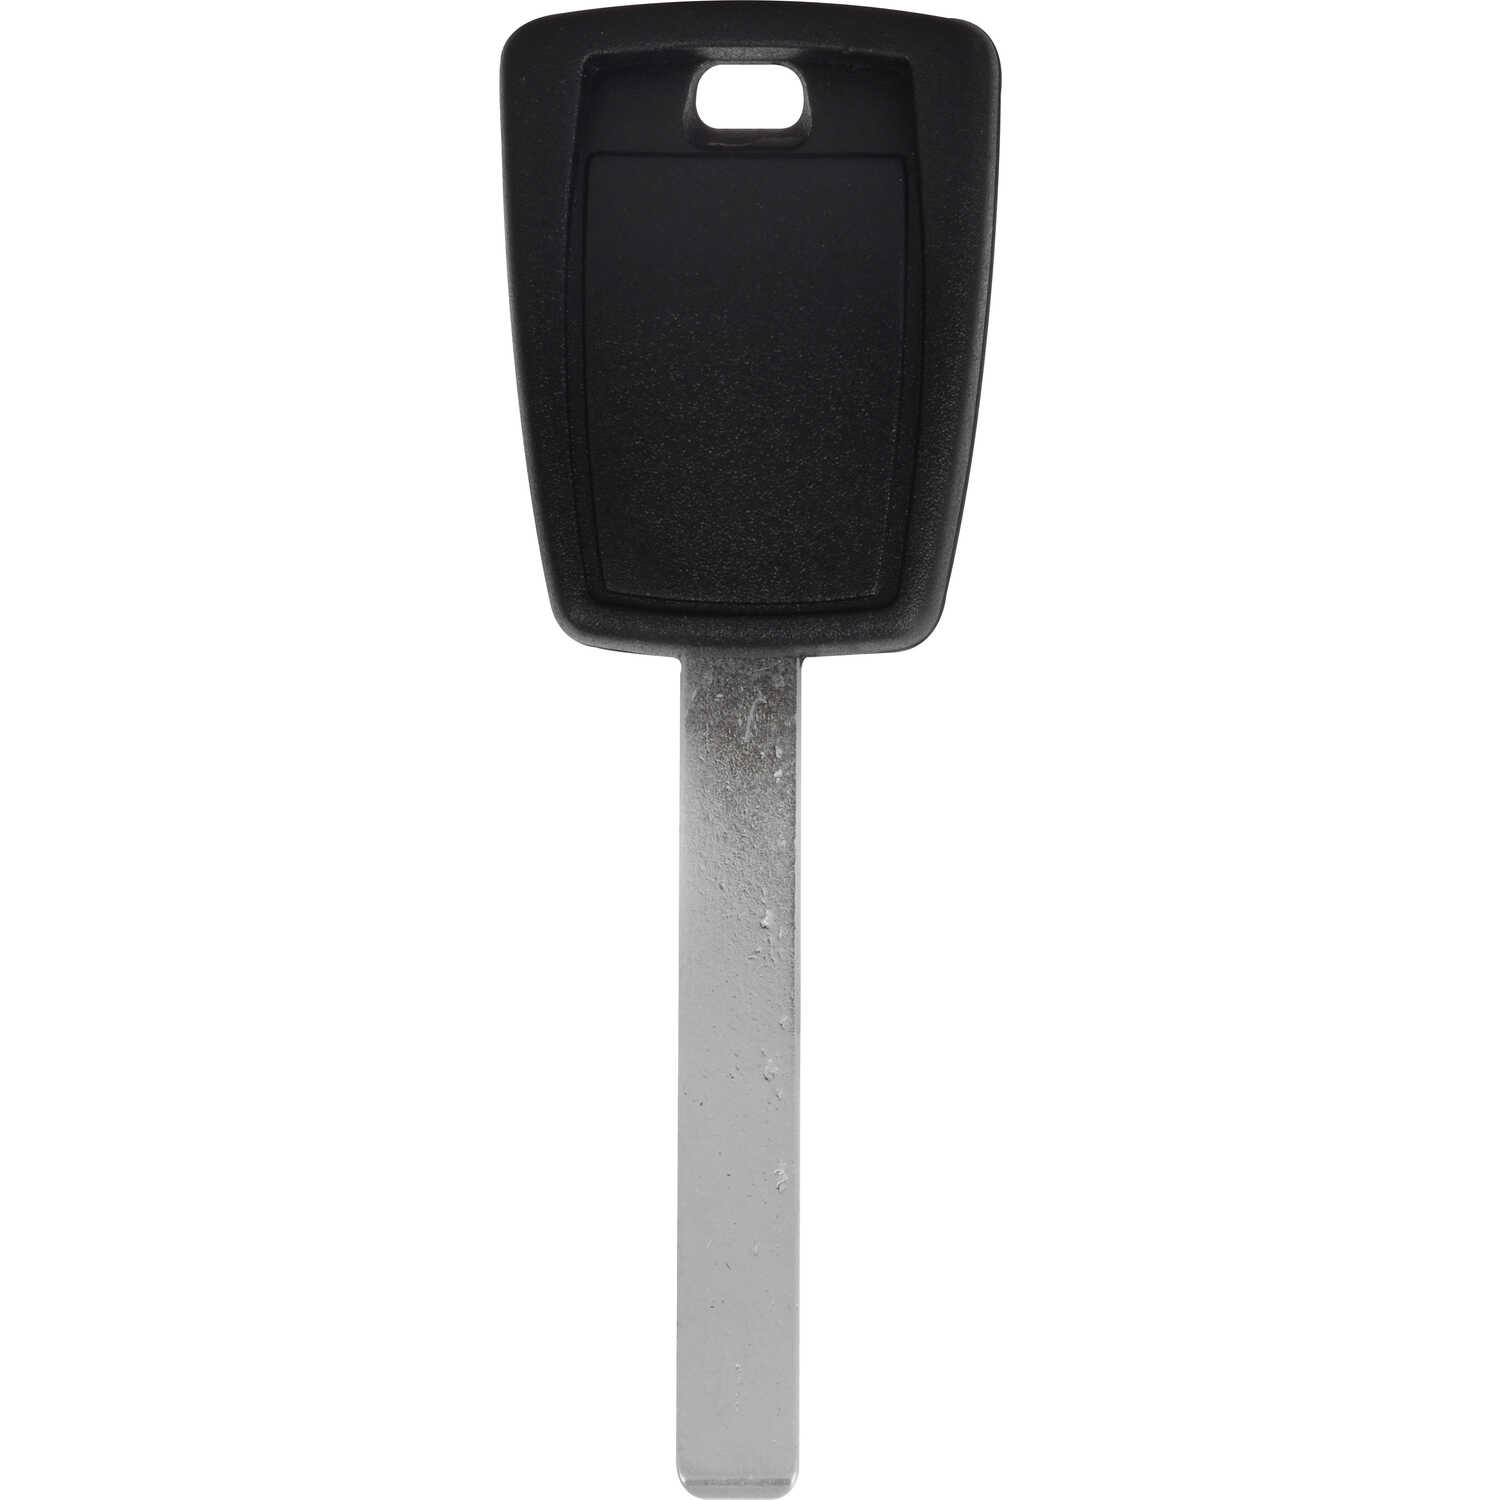 Duracell  Transponder Key  Automotive  Chipkey  GM B119-PT High Security Transponder Key  Double sid